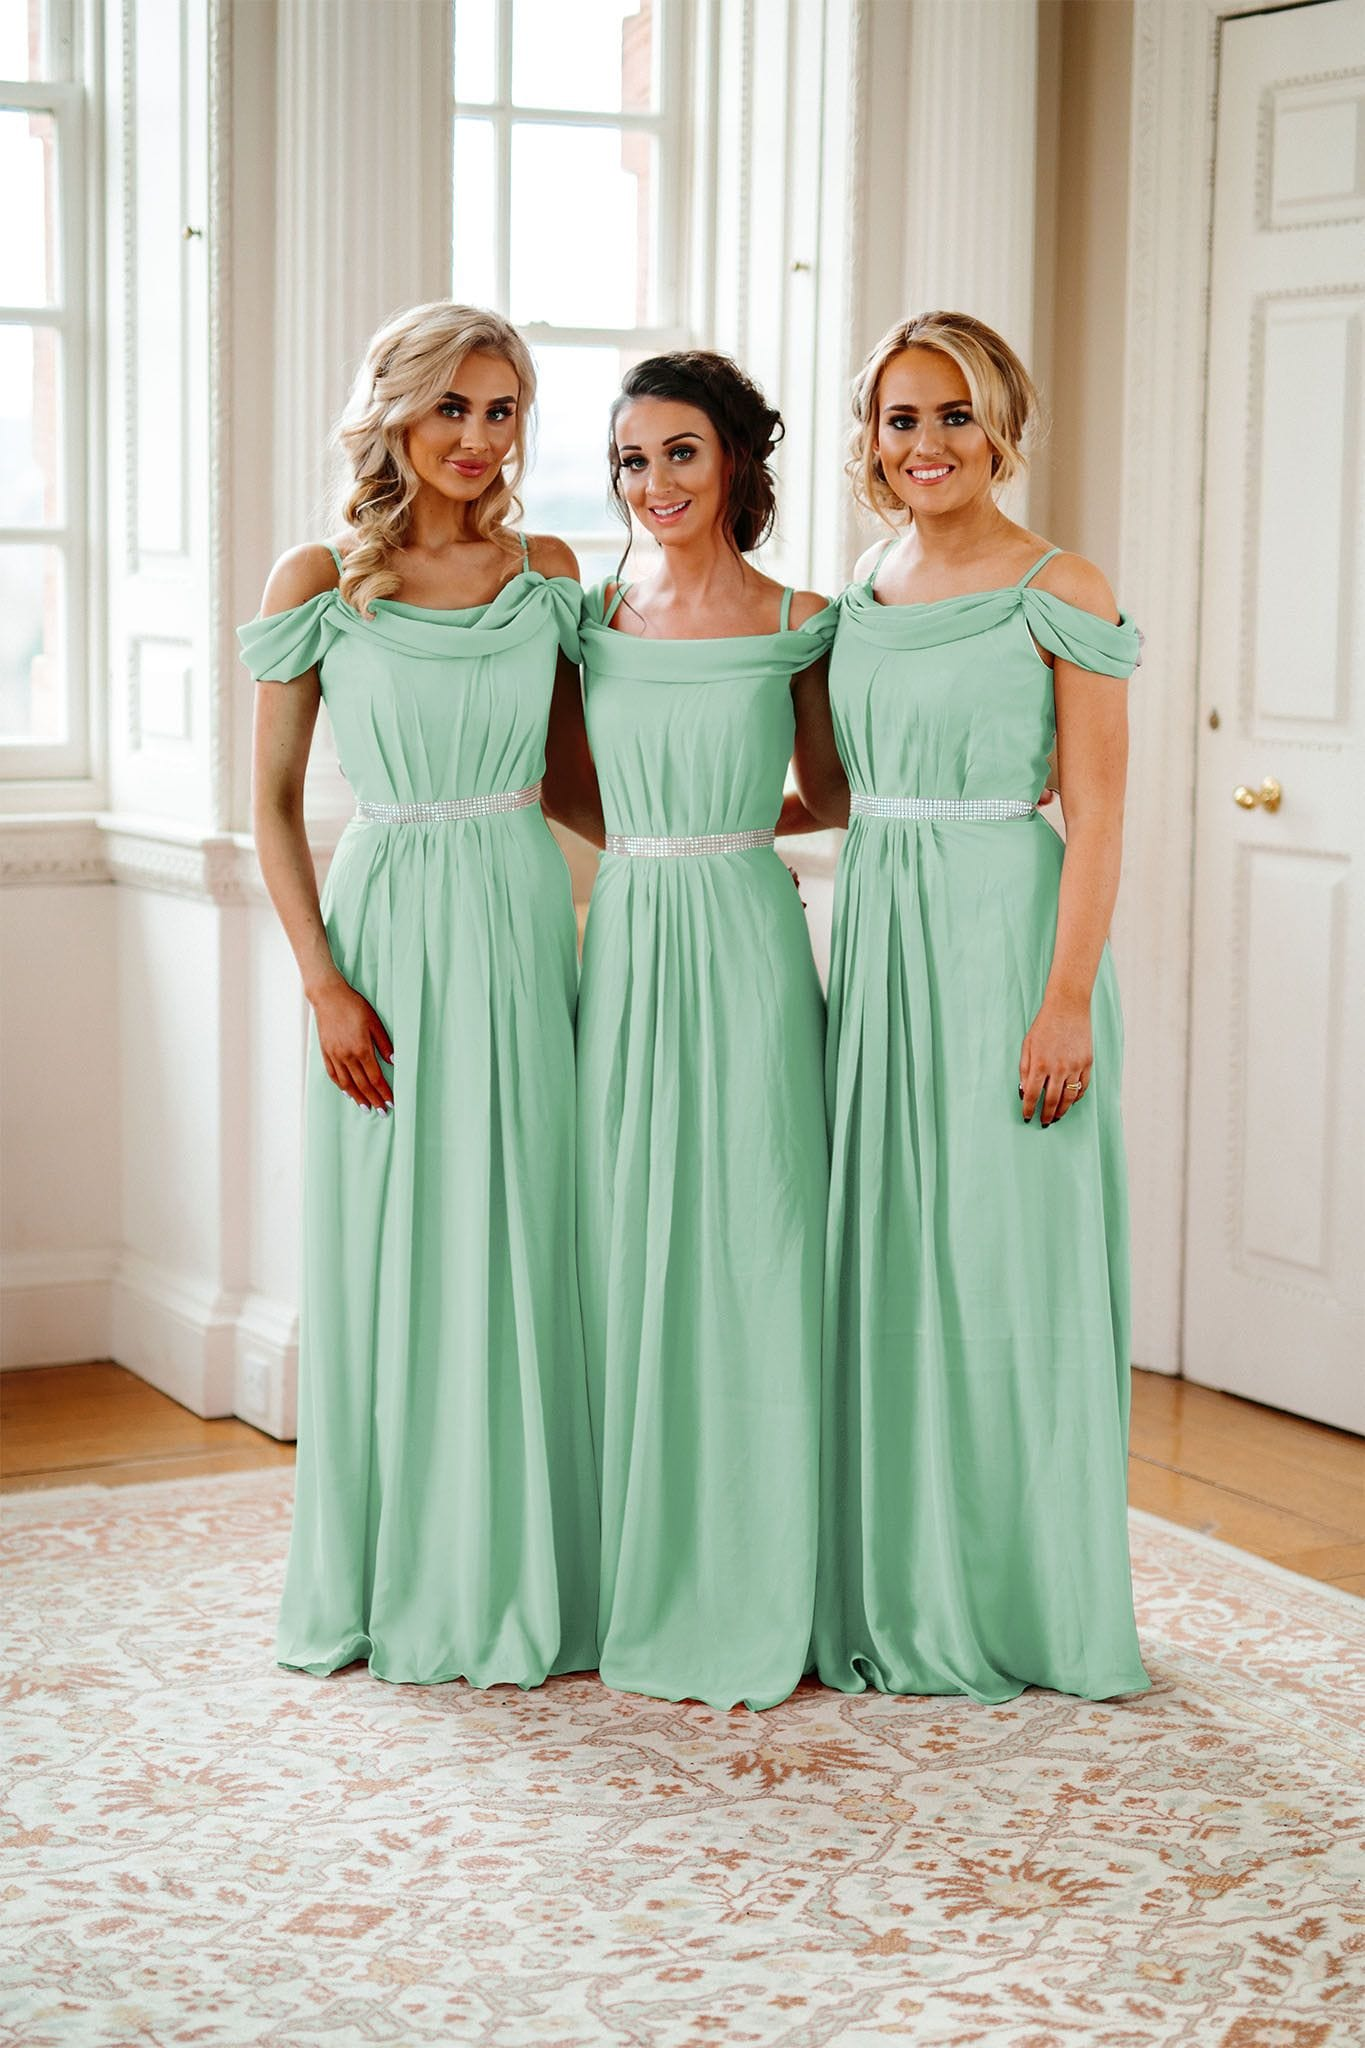 Take a Look at These Beautiful Plus Size Turquoise ...